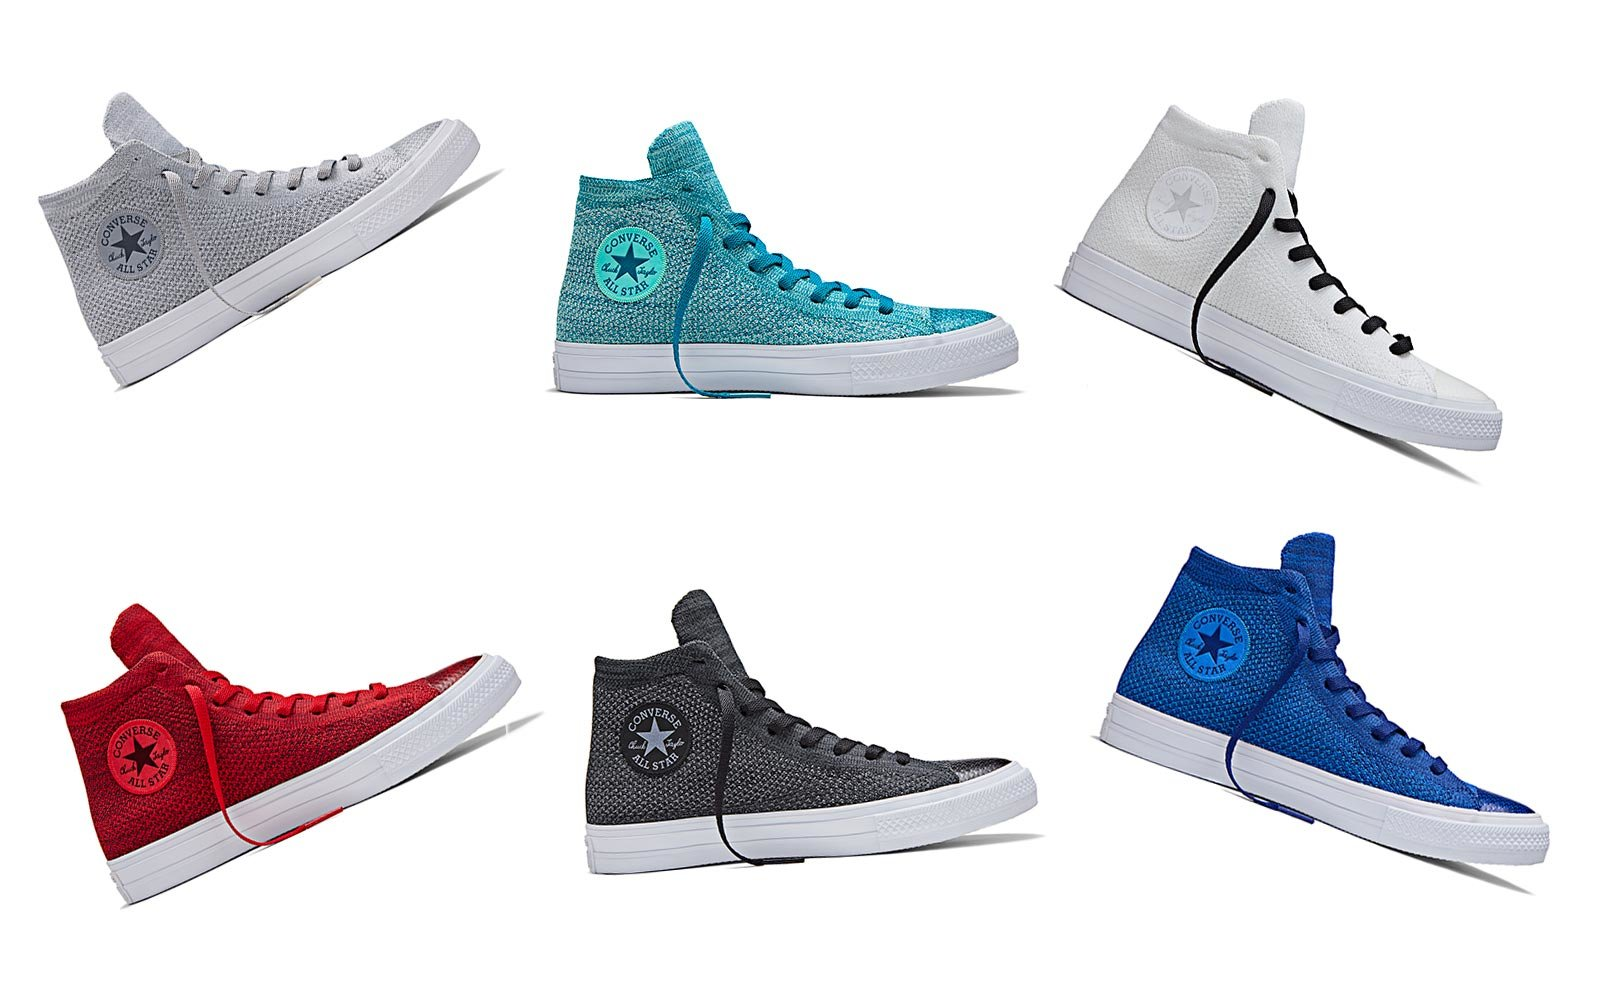 6a54b1c77780 Converse Chuck Taylor All Star x Nike Flyknit Launch Our New ...